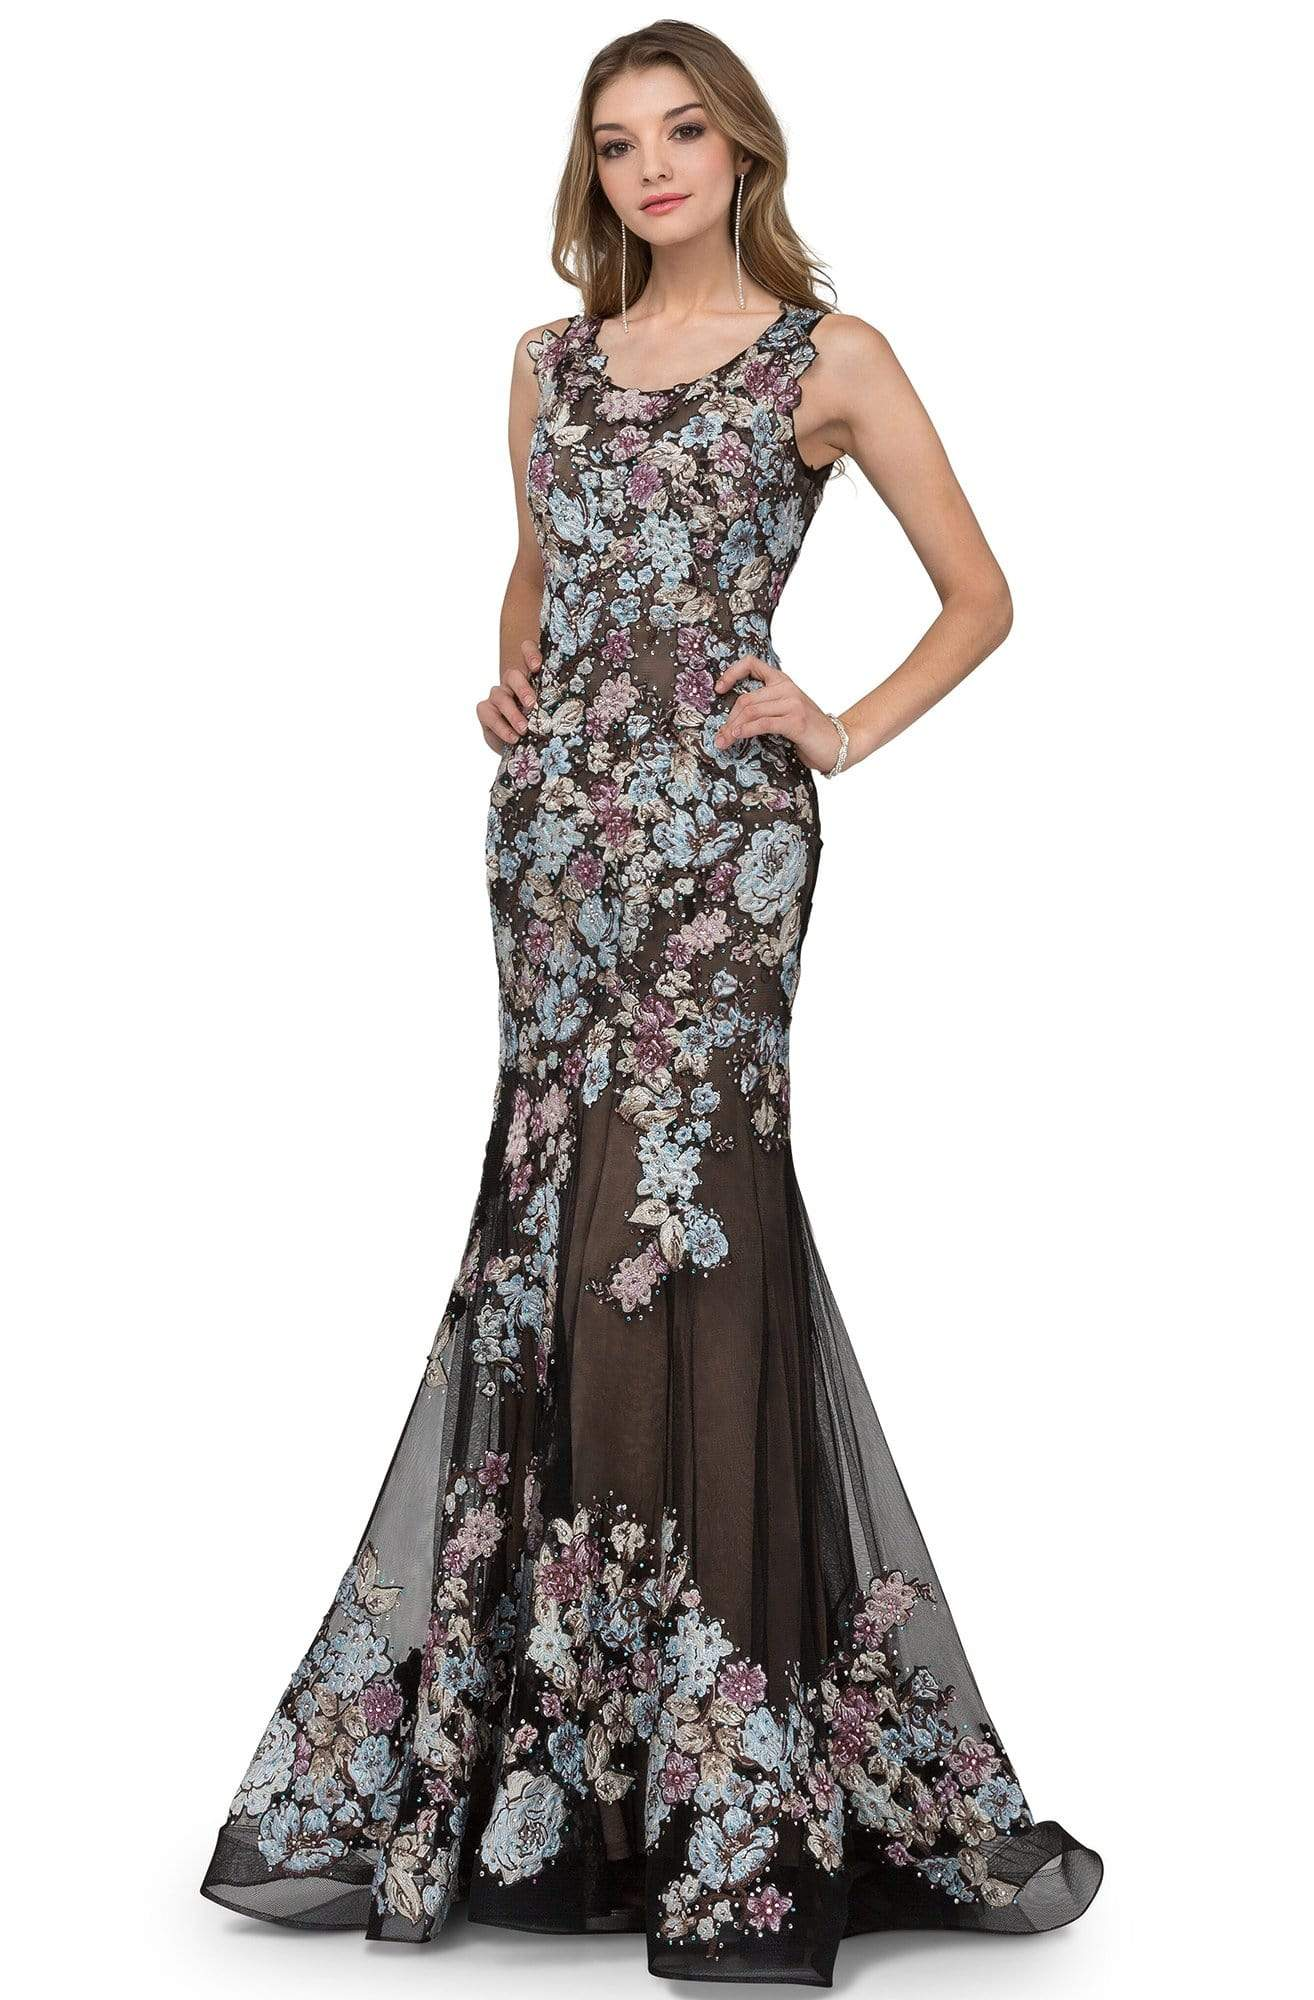 Cecilia Couture - 1404 Floral Applique Scoop Neck Trumpet Gown from Cecilia Couture